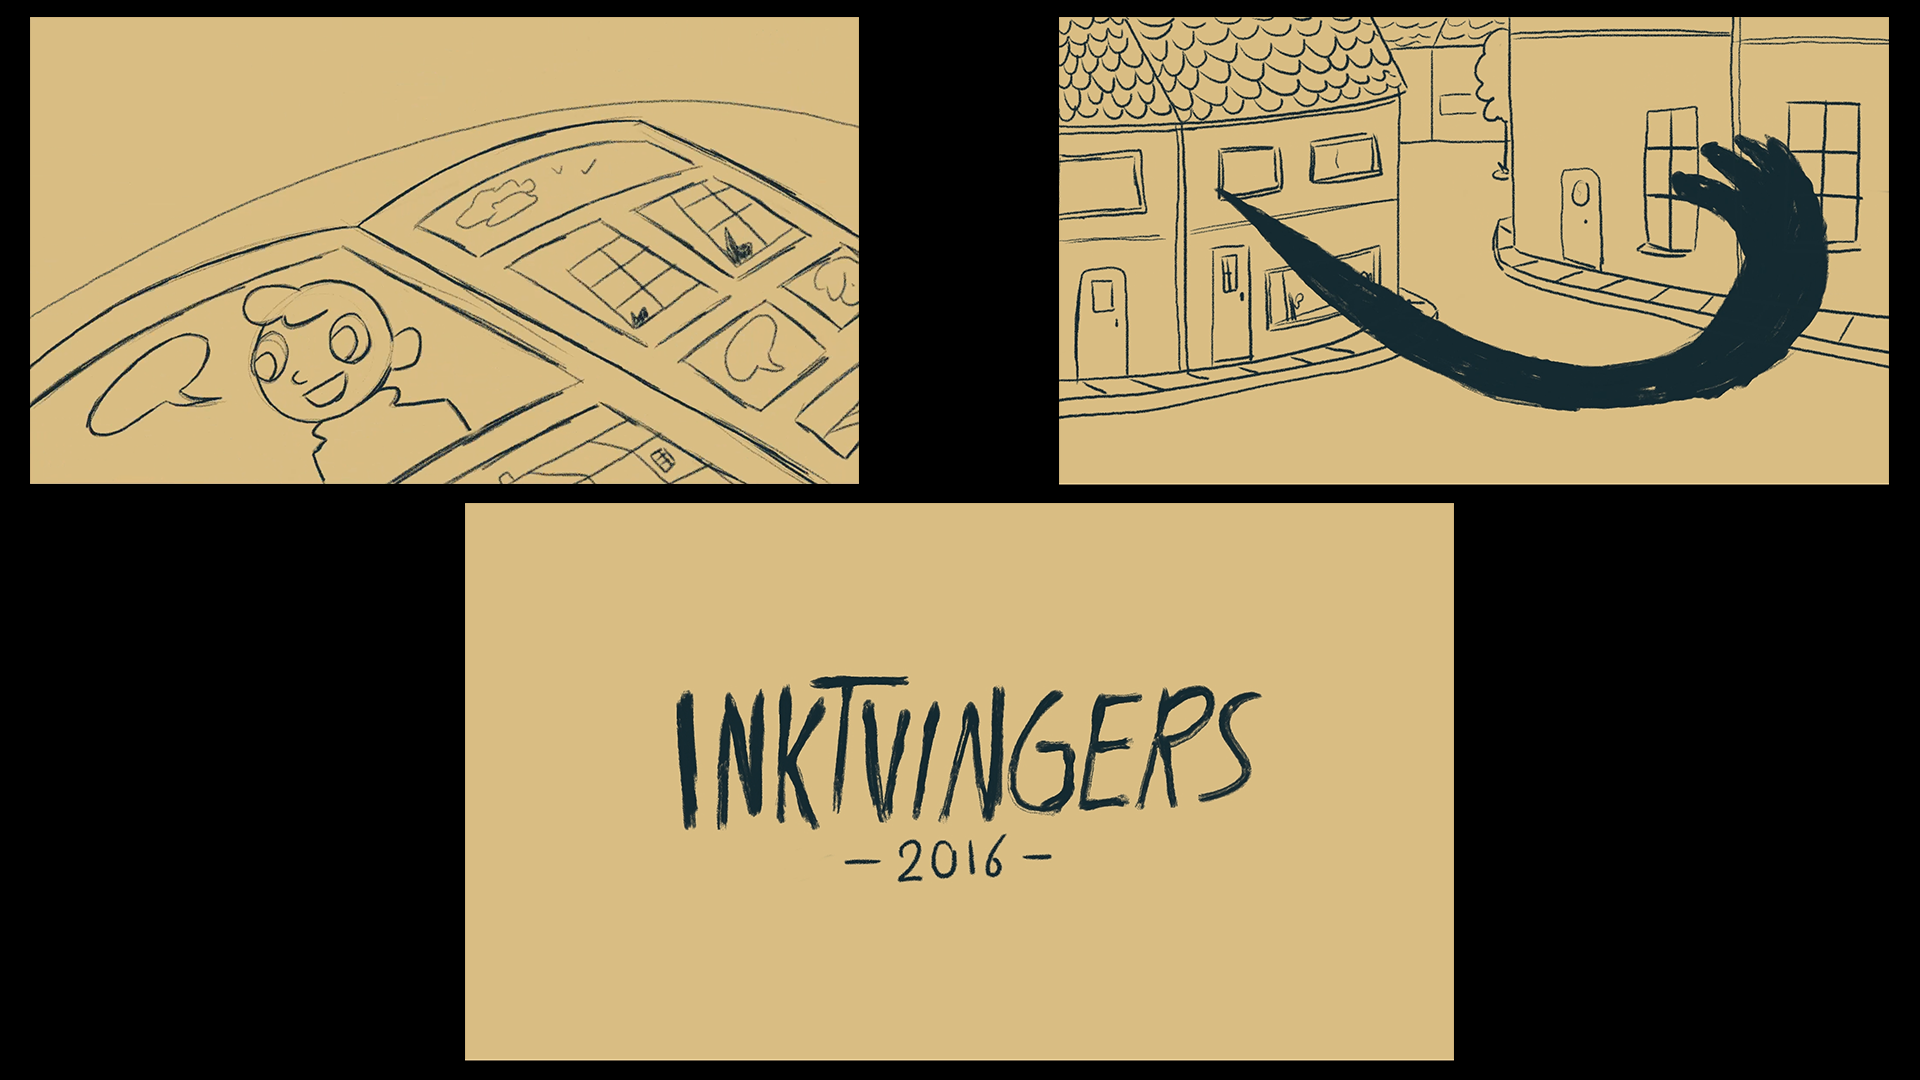 inktvingers-collage-2.png